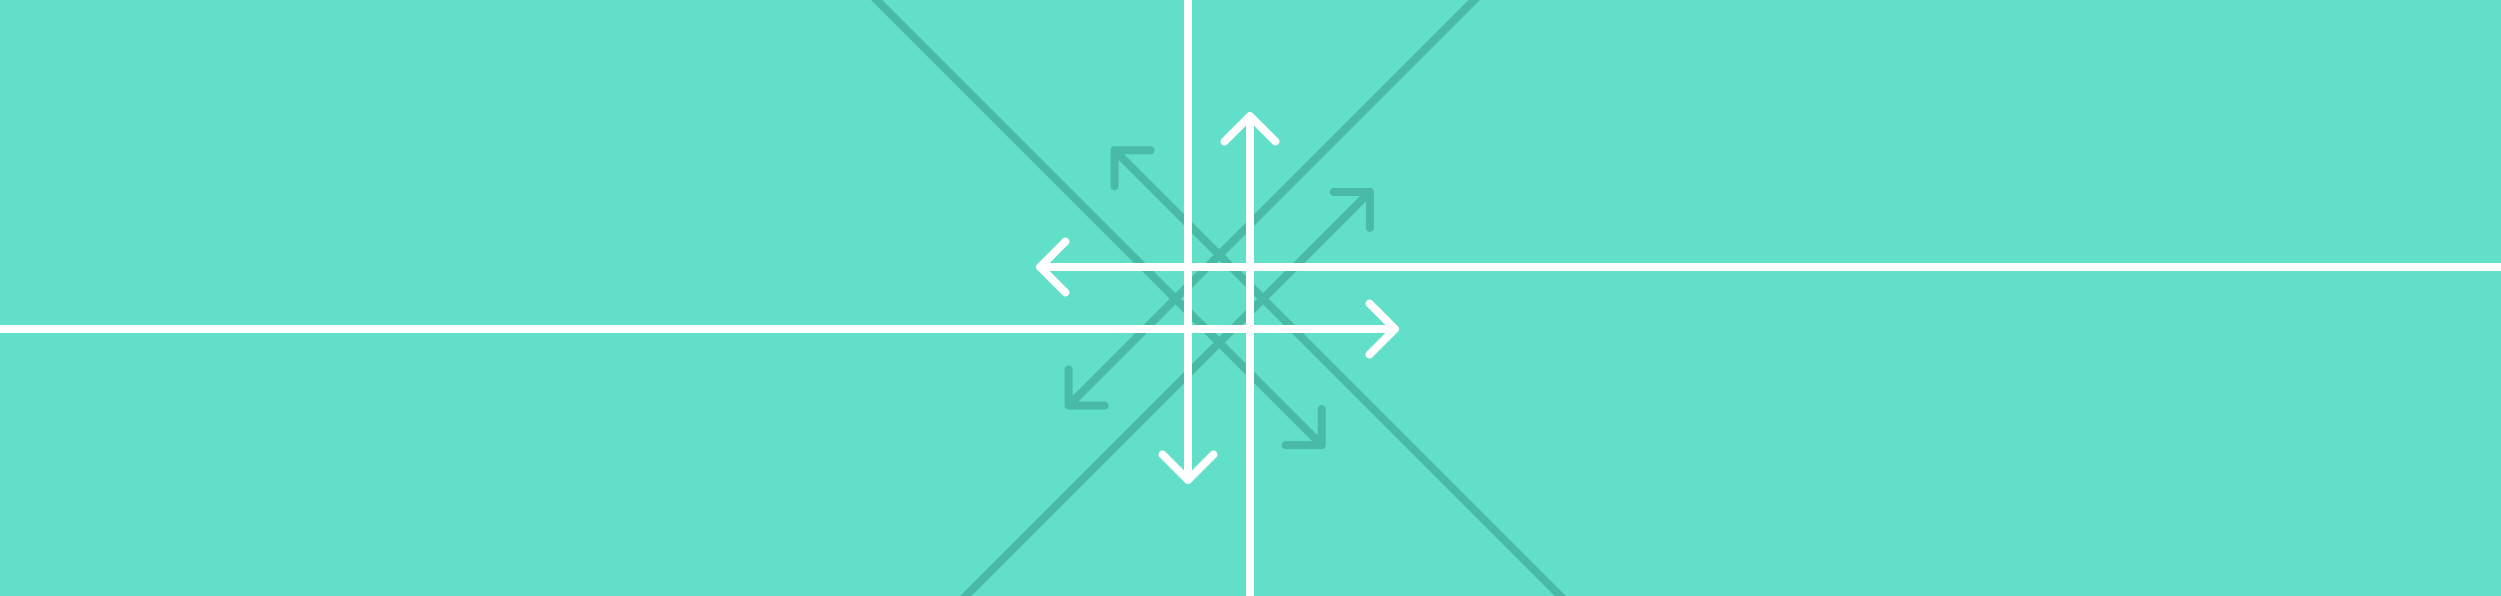 eight arrow lines, from different directions crossing over in the centre